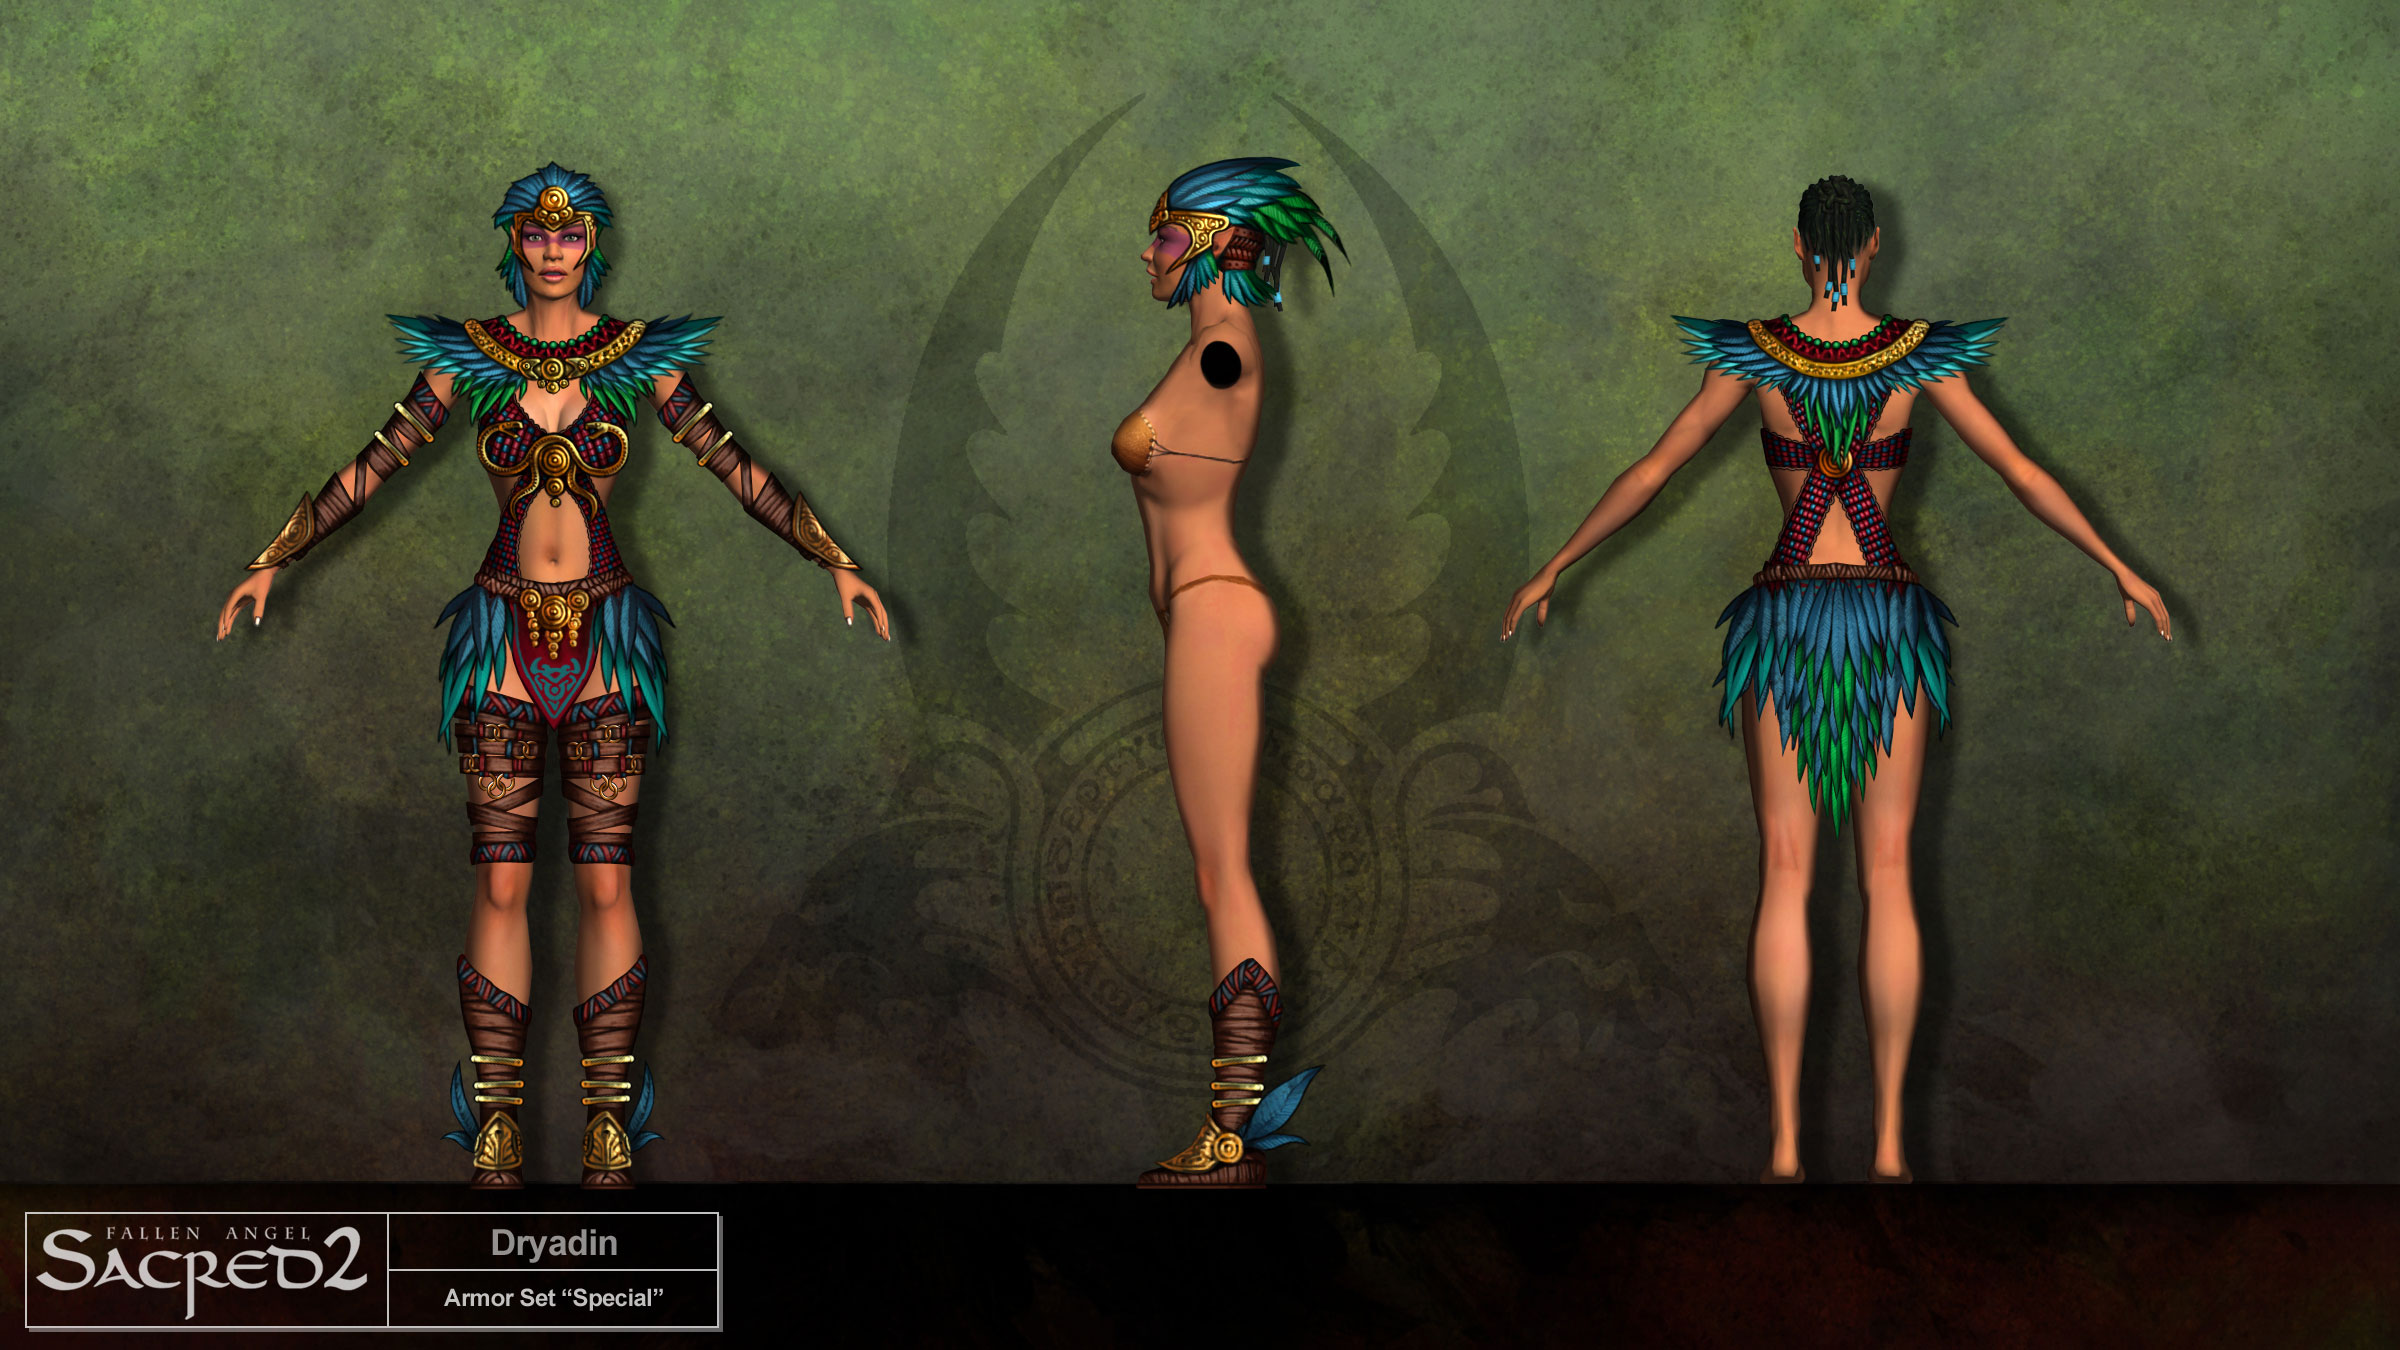 Sacred seraphim nude model patch mod exposed videos